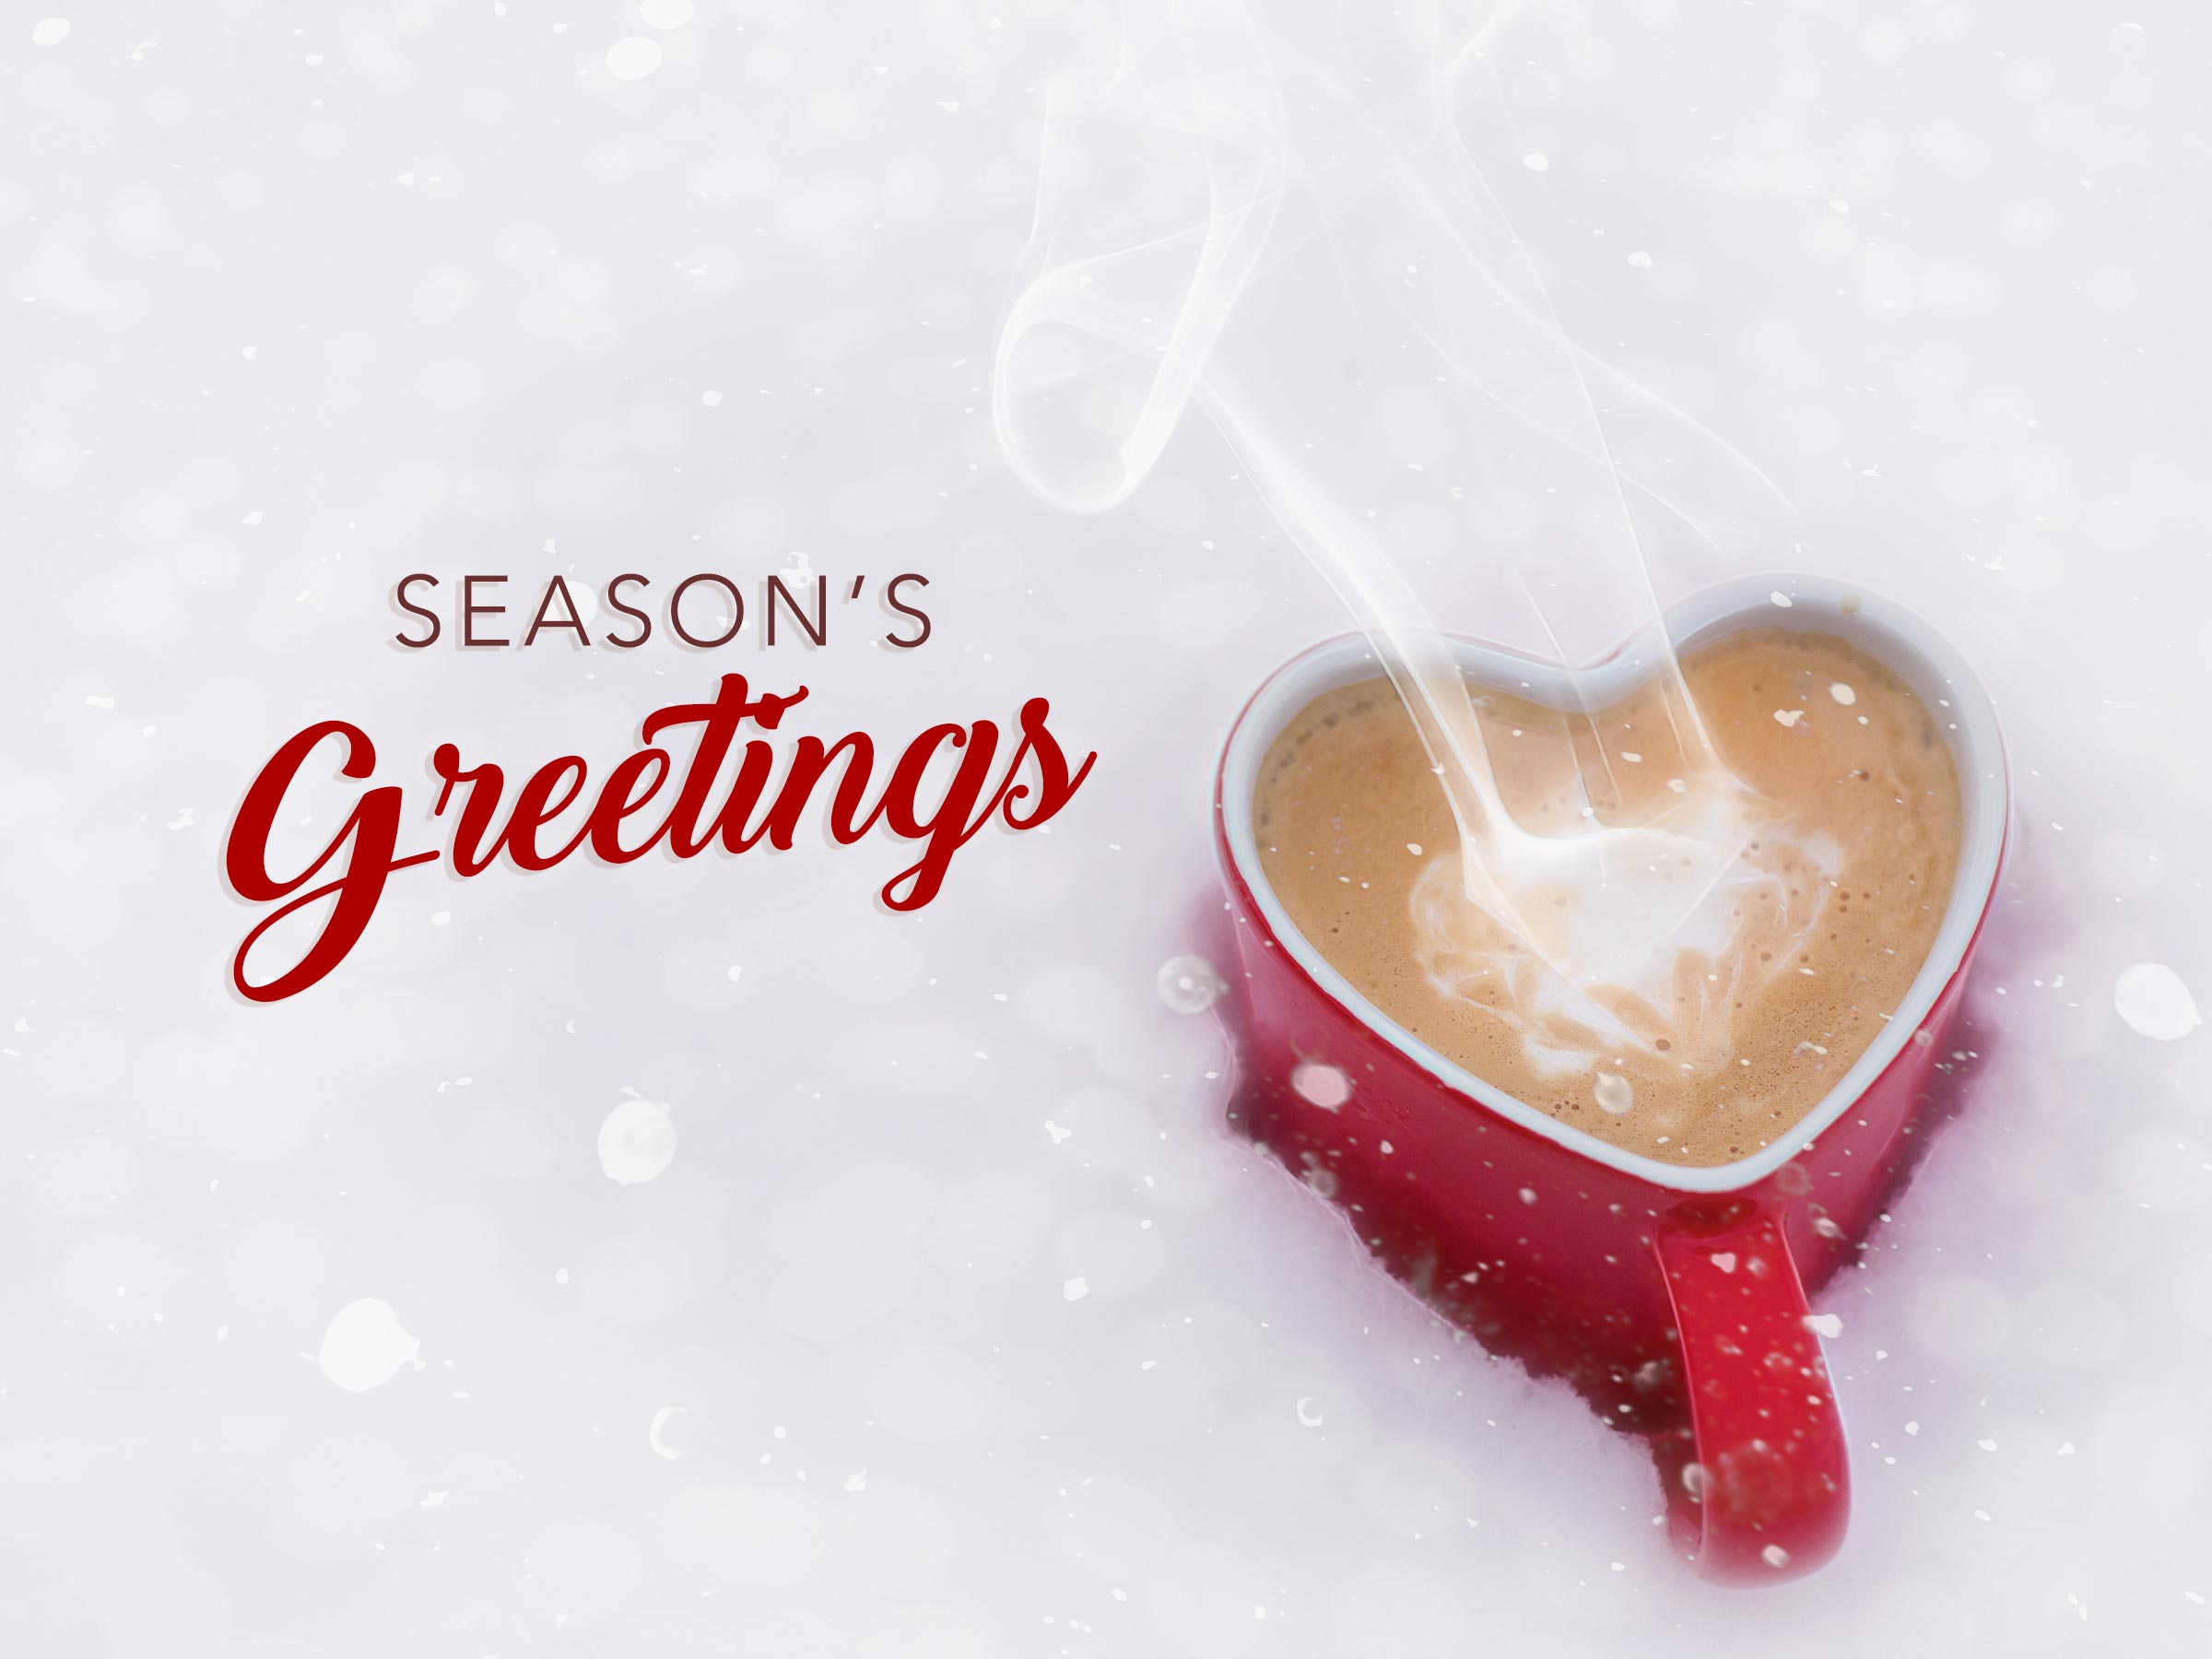 download 15 Seasons Greetings Cards Stock Images HD 2400x1800